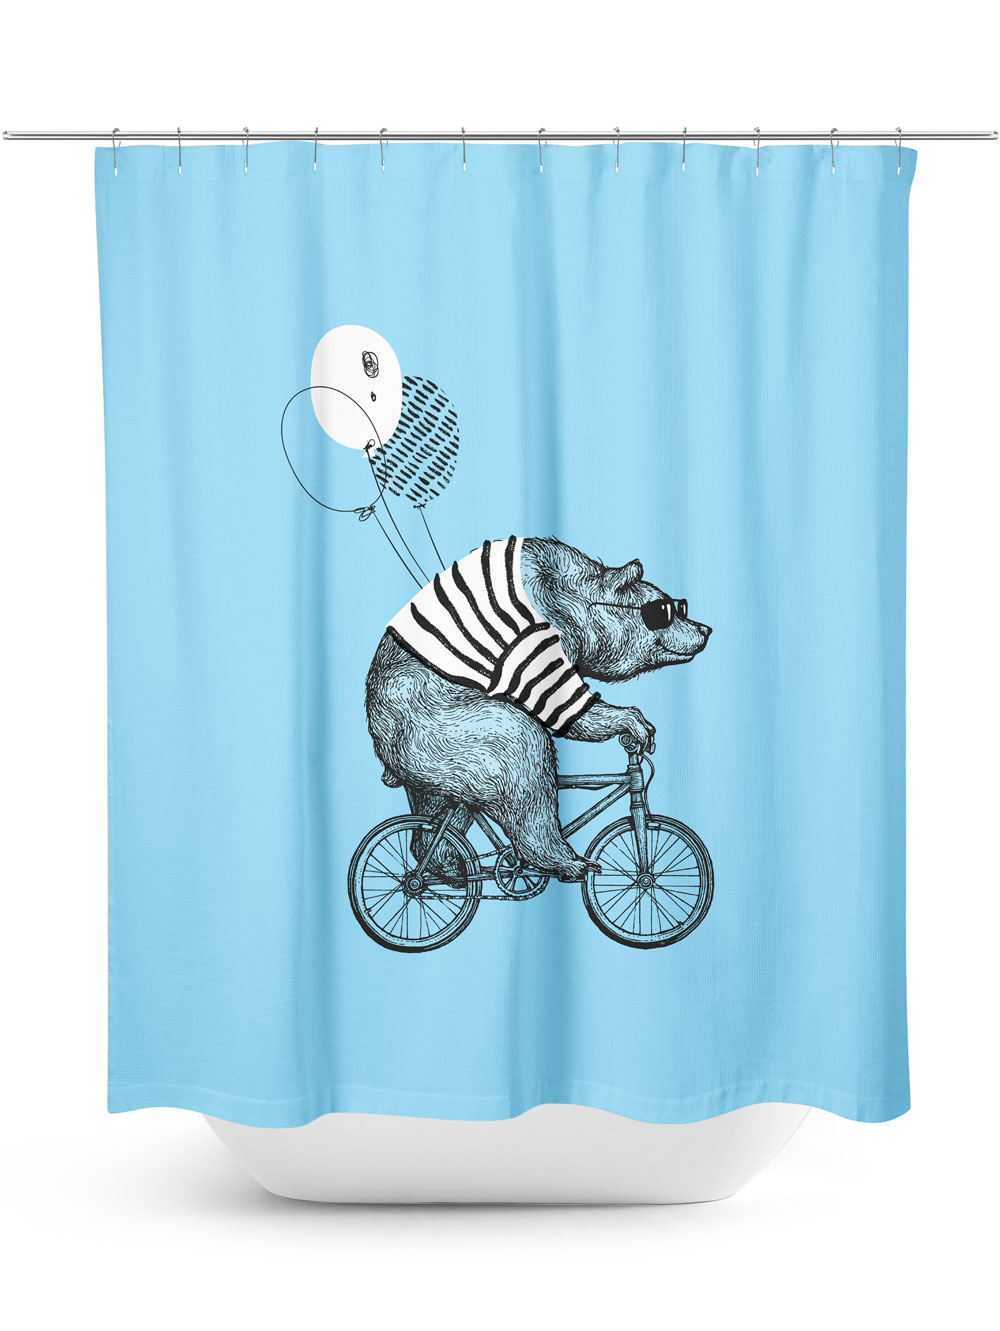 Bear riding bicycle blue shower curtain